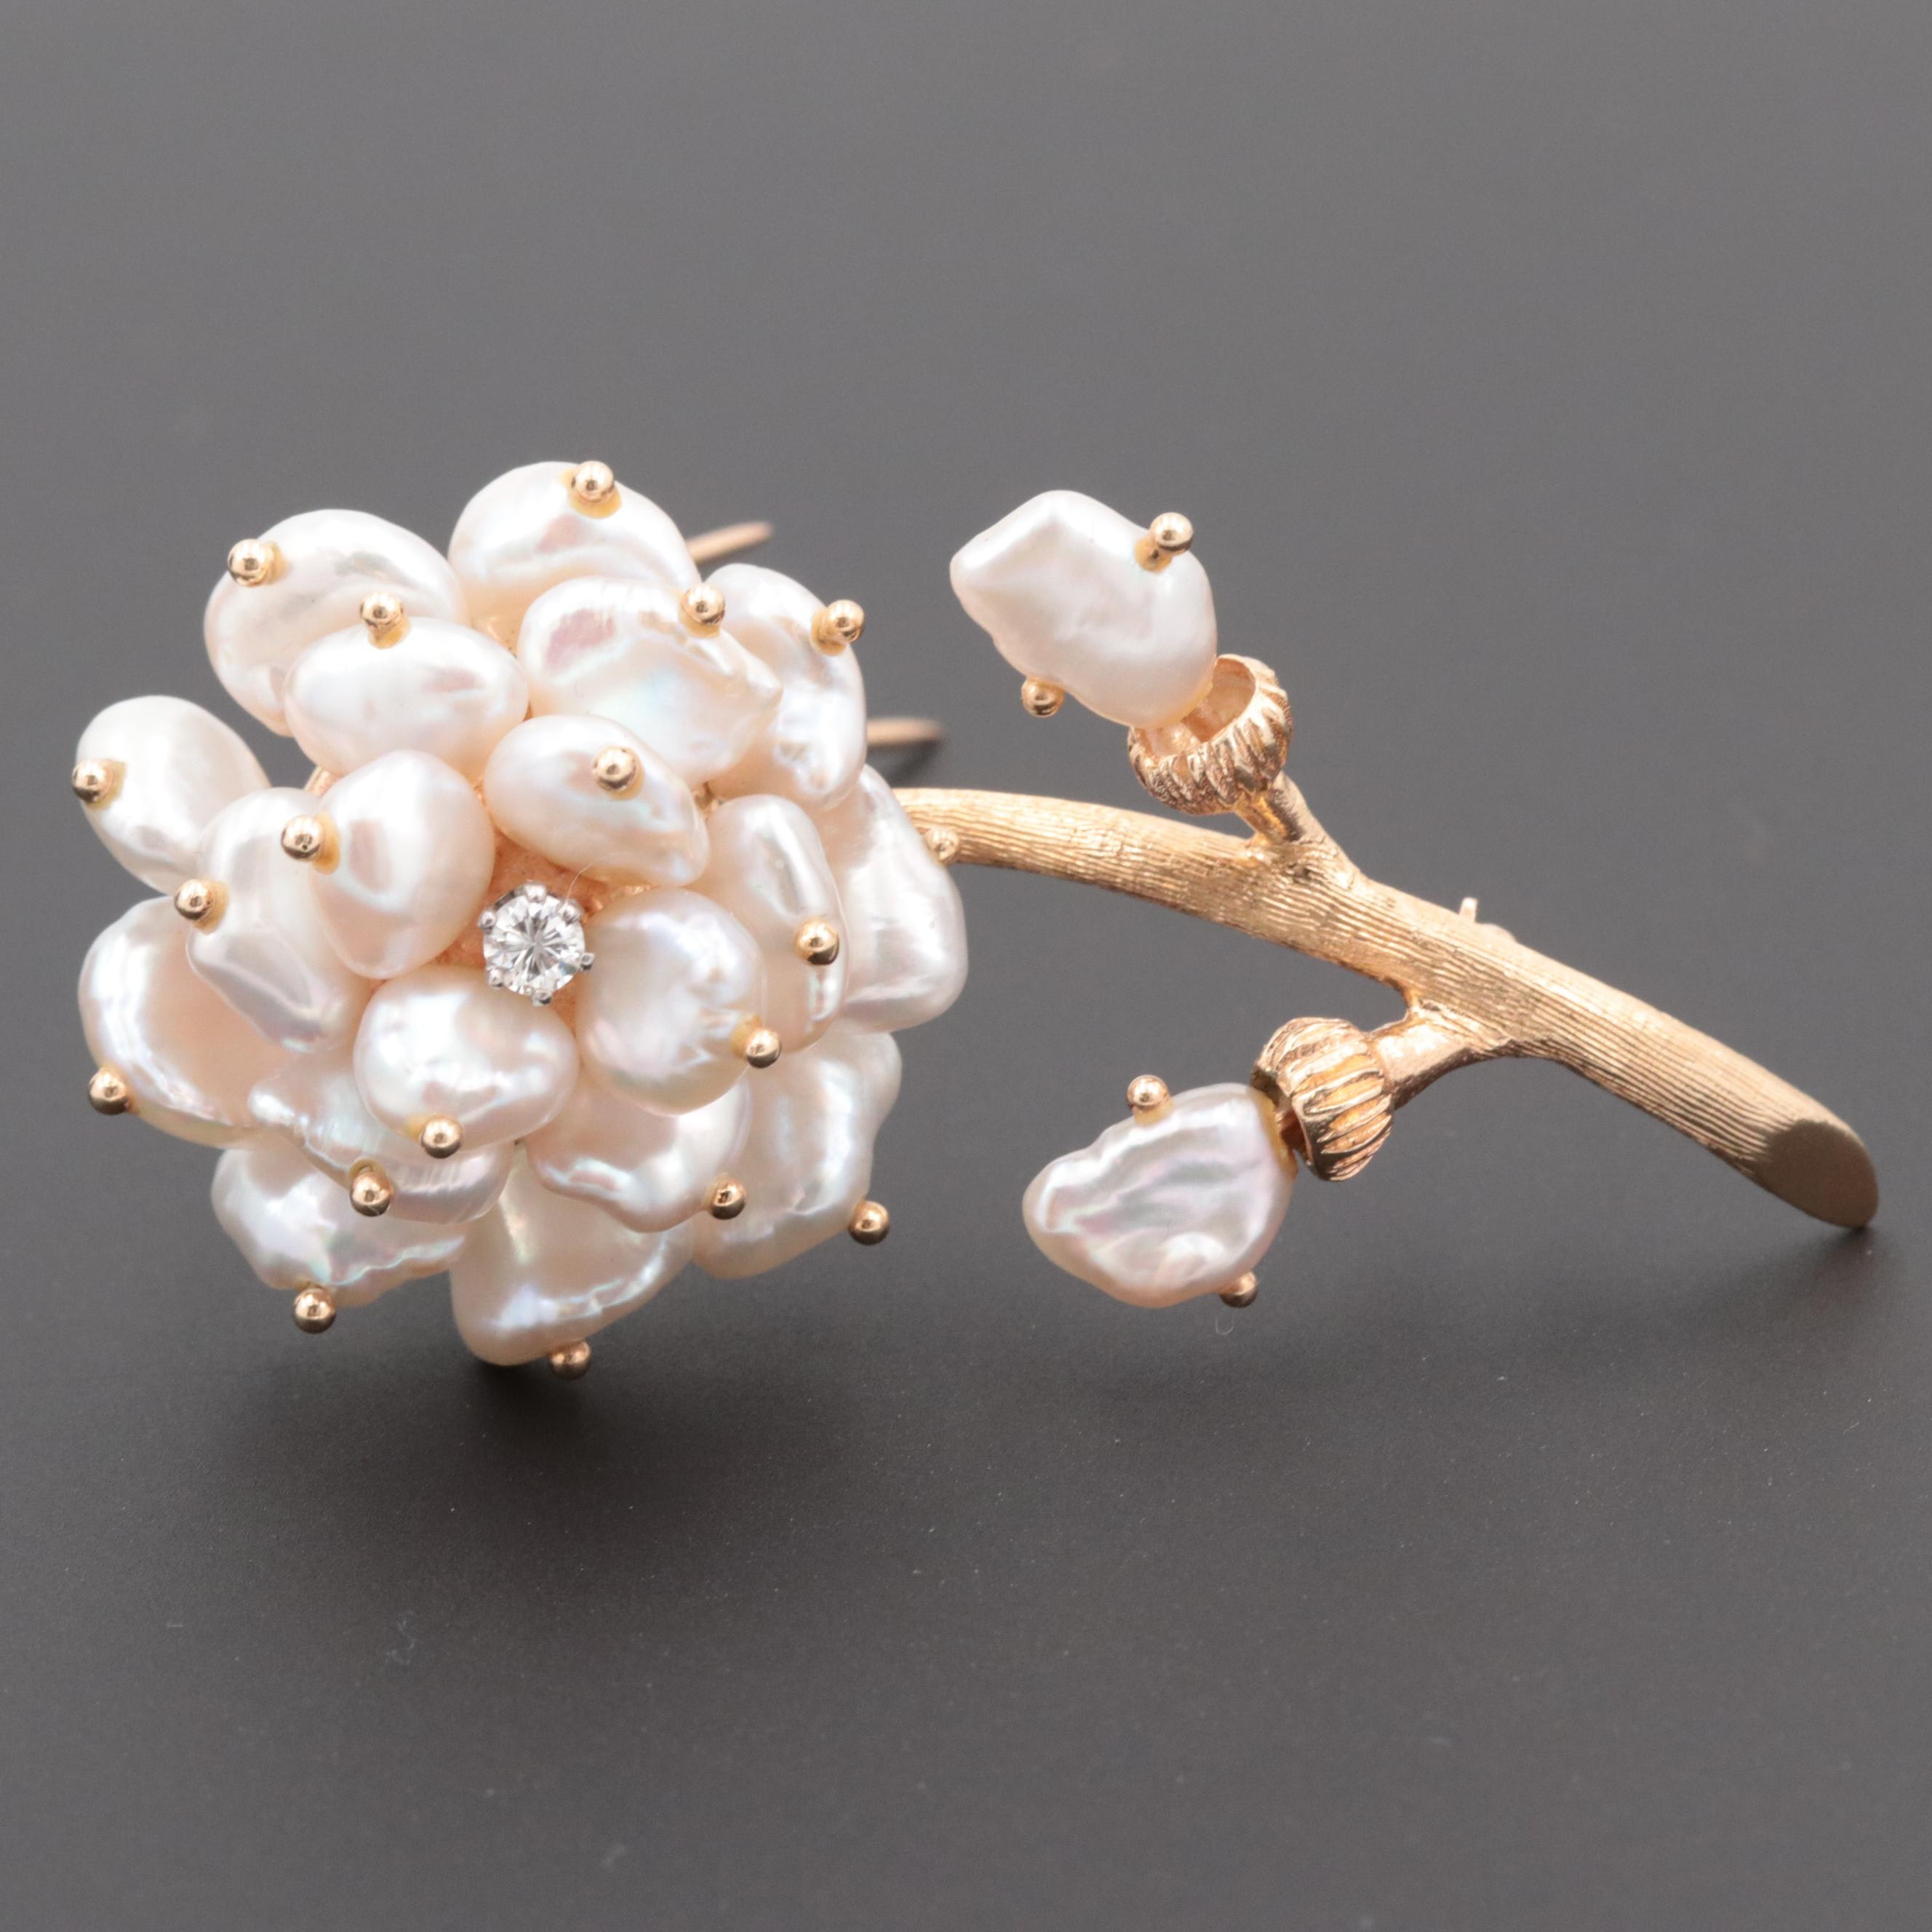 Vintage Lazarus Jewelers 14K Yellow Gold Diamond and Cultured Pearl Brooch